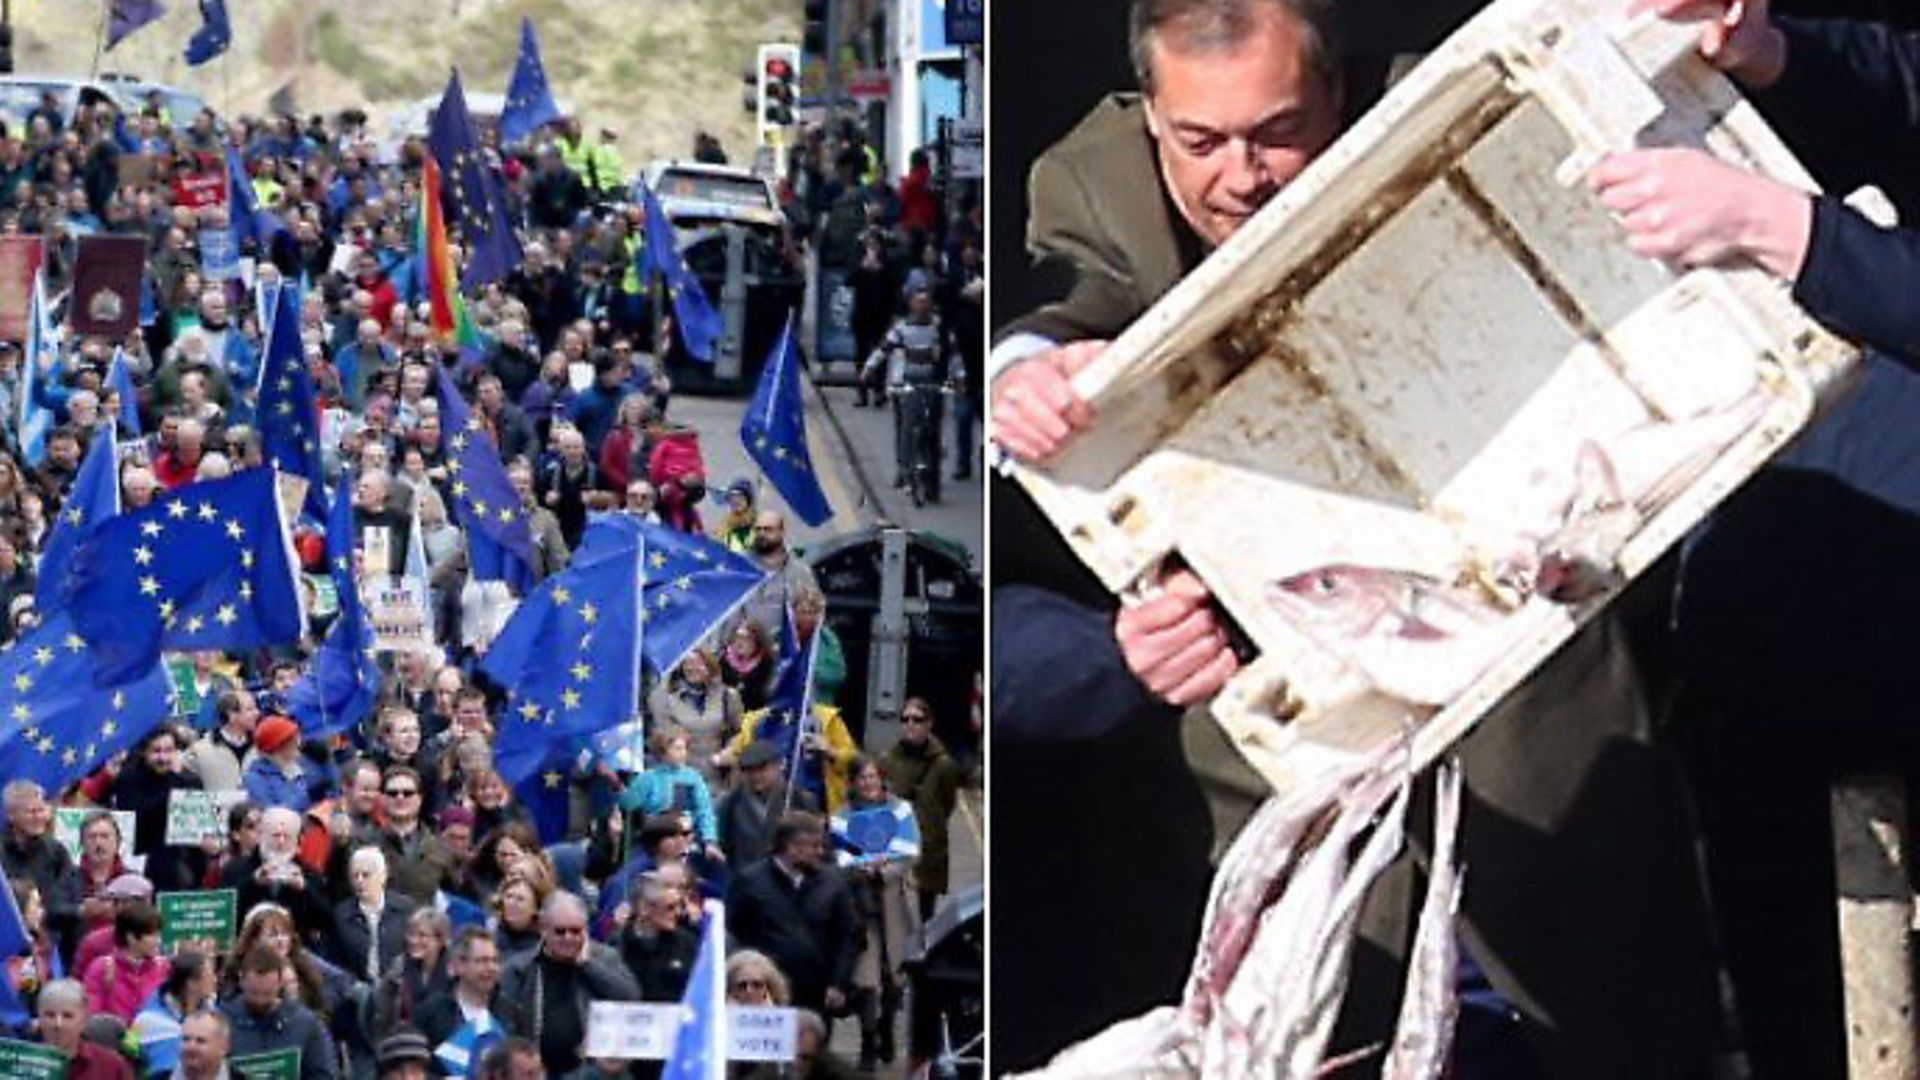 Pro-EU regional rallies across the country received little media attention, whereas Nigel Farage's fish protest was covered everywhere. (Photographs: PA) - Credit: Archant